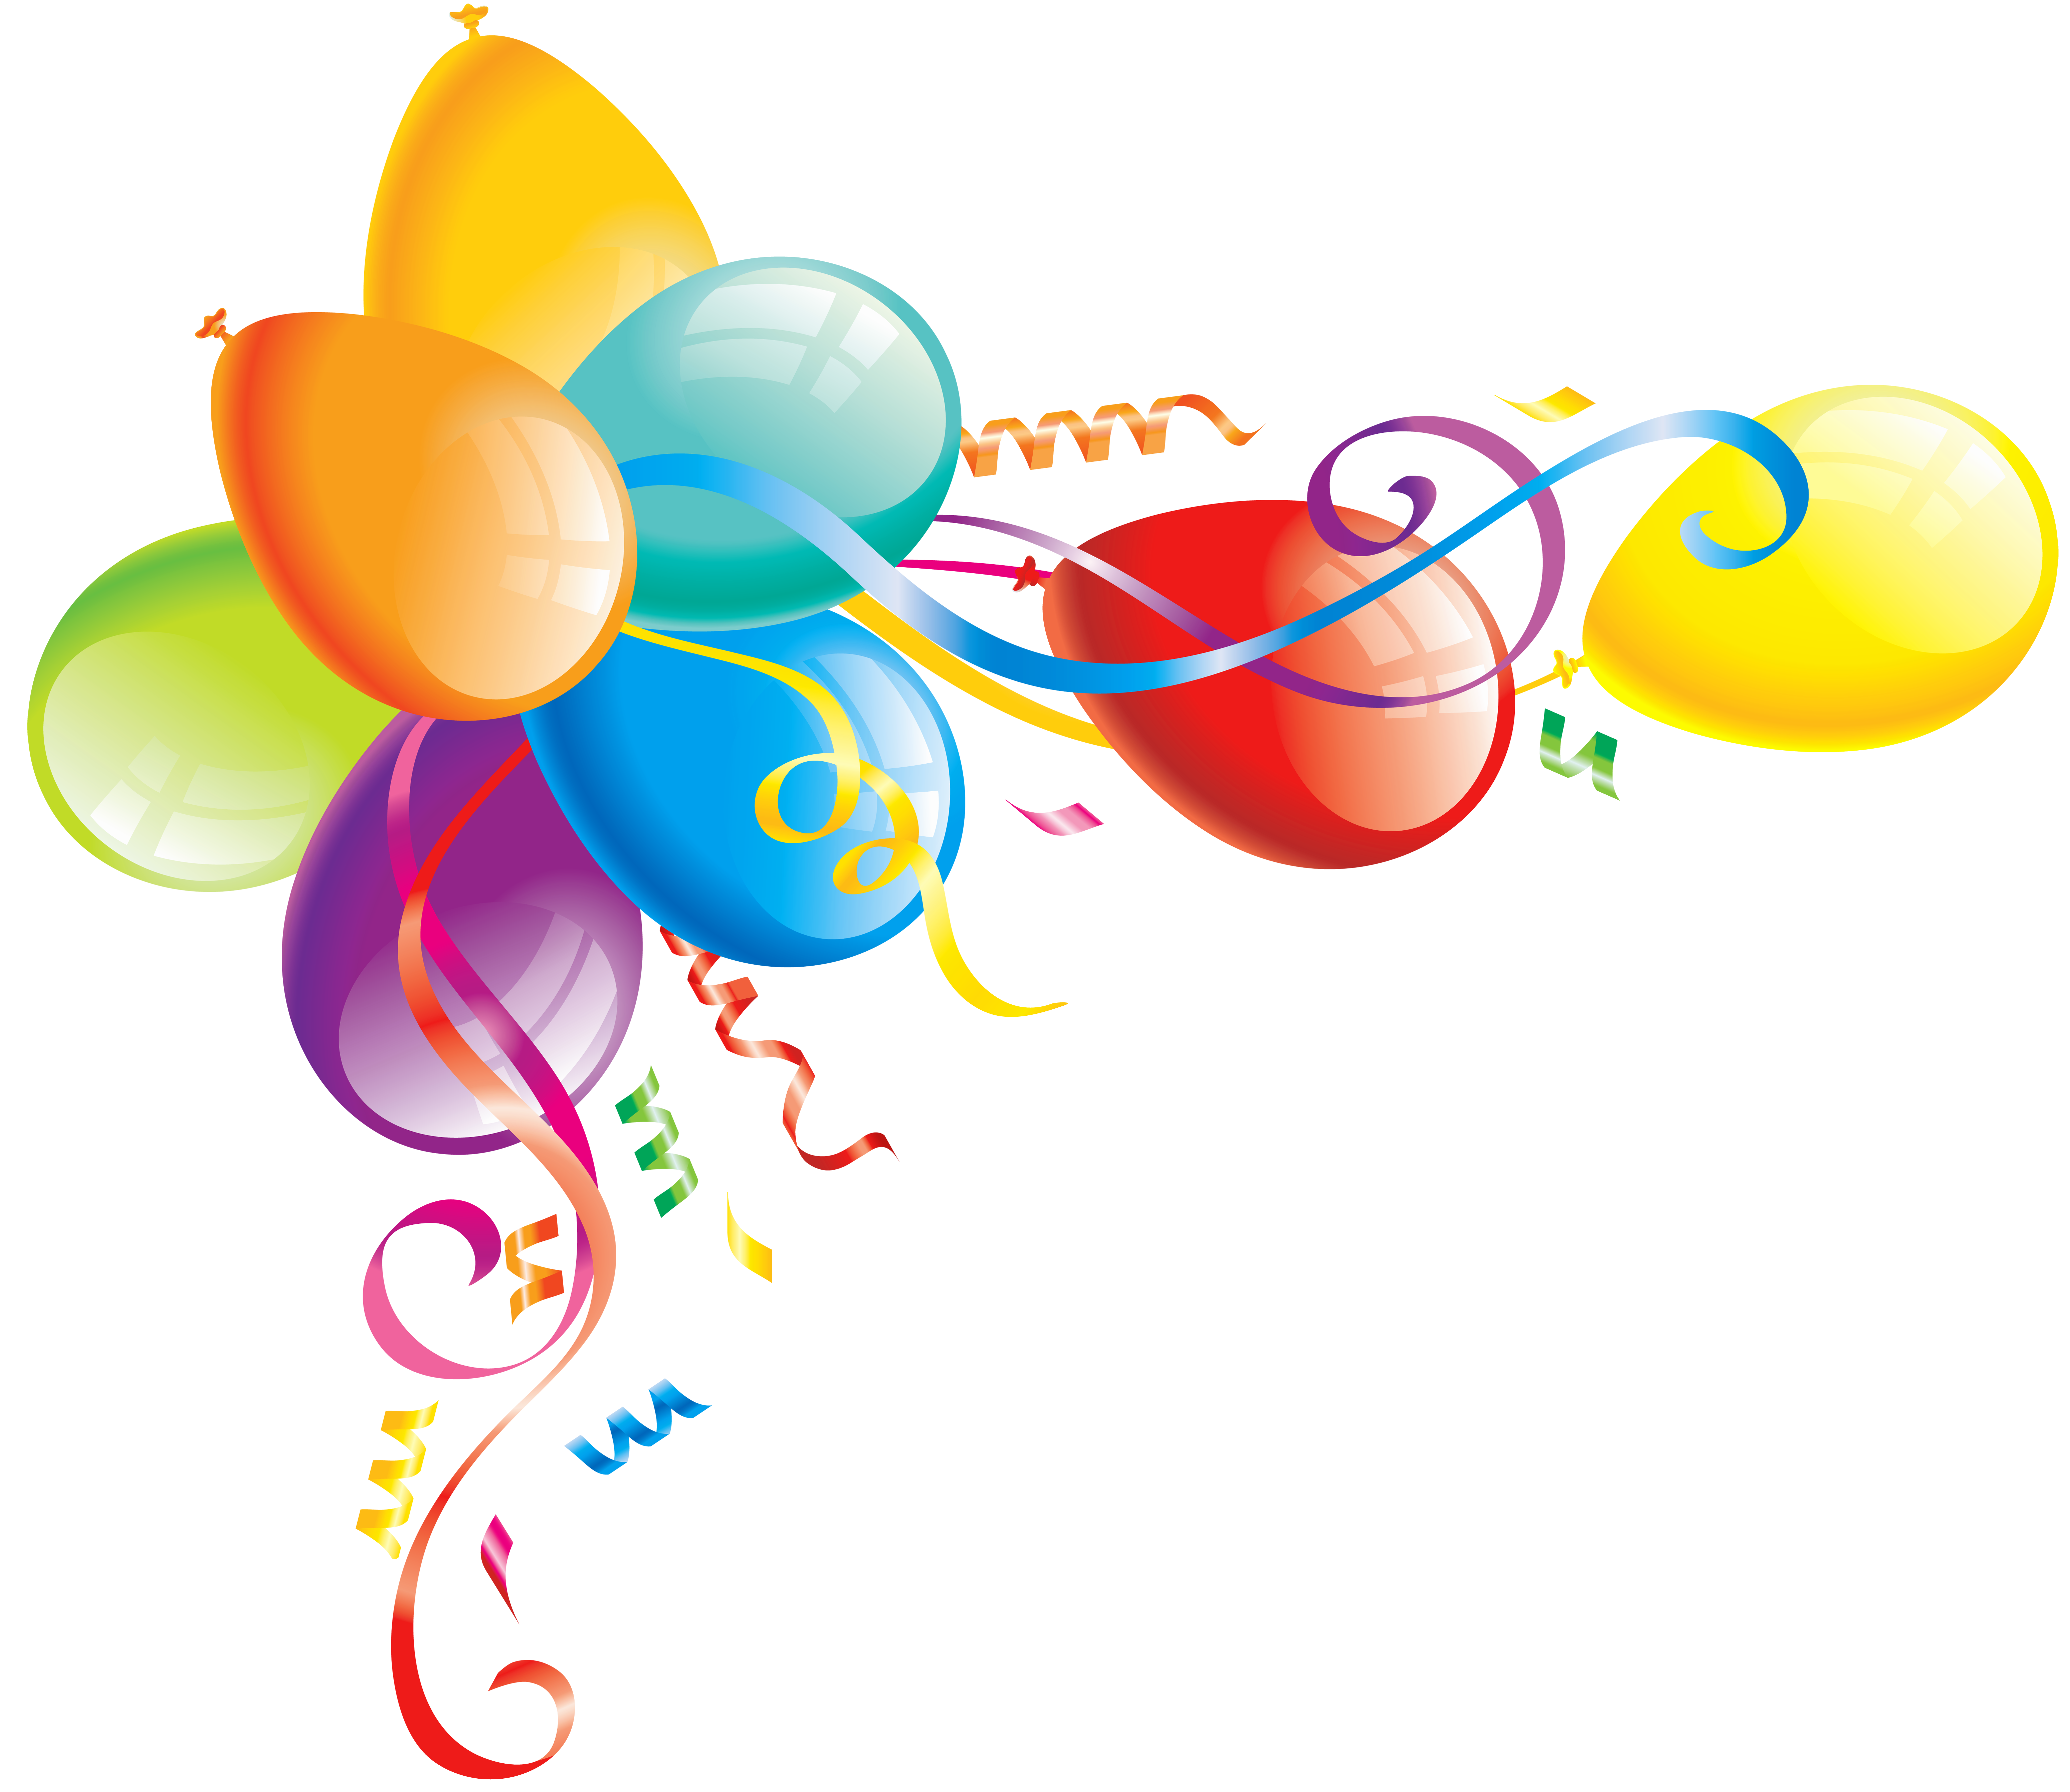 free balloon clip art pictures - photo #34